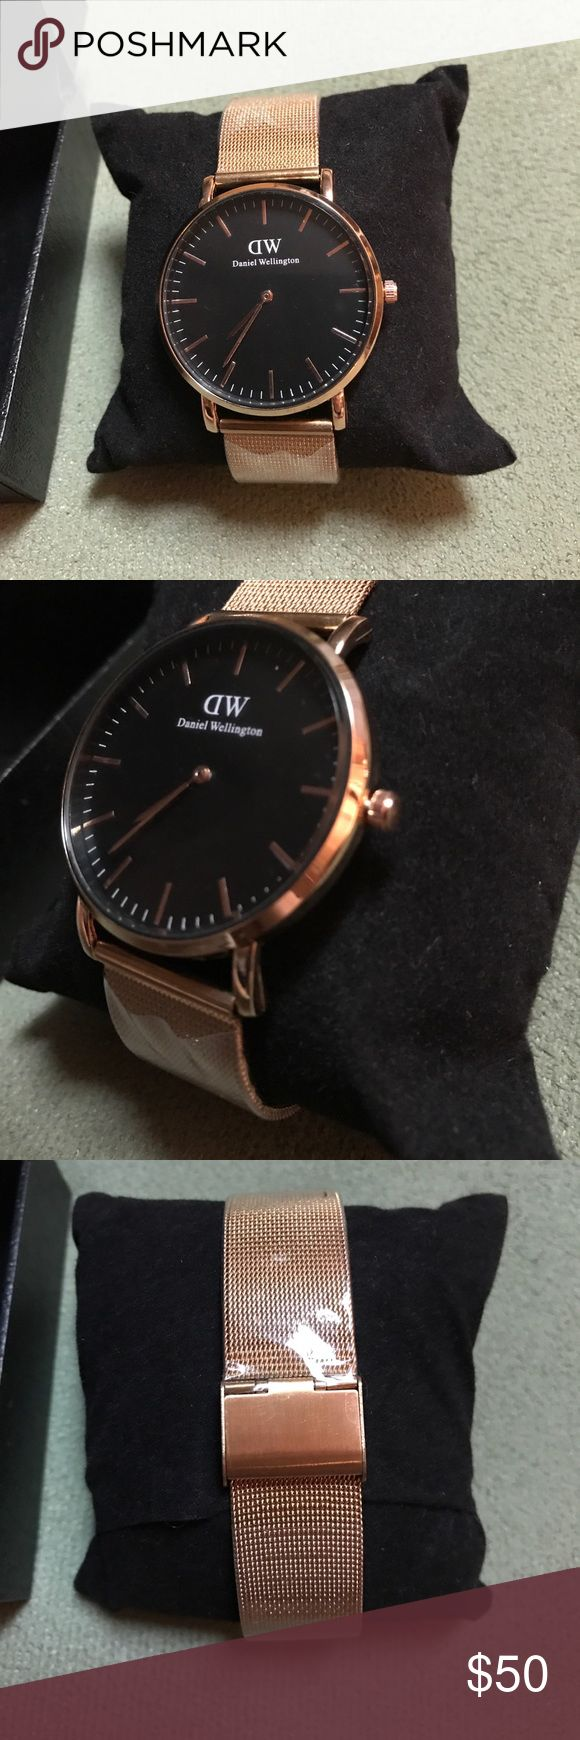 💥NEW💥Daniel Wellington Gold/Black Watch Last one!  New with spare black box. Adjustable wrist track. case diameter 5cm, face 4.5cm. Very good quality (Price reflects authenticity) Daniel Wellington Accessories Watches